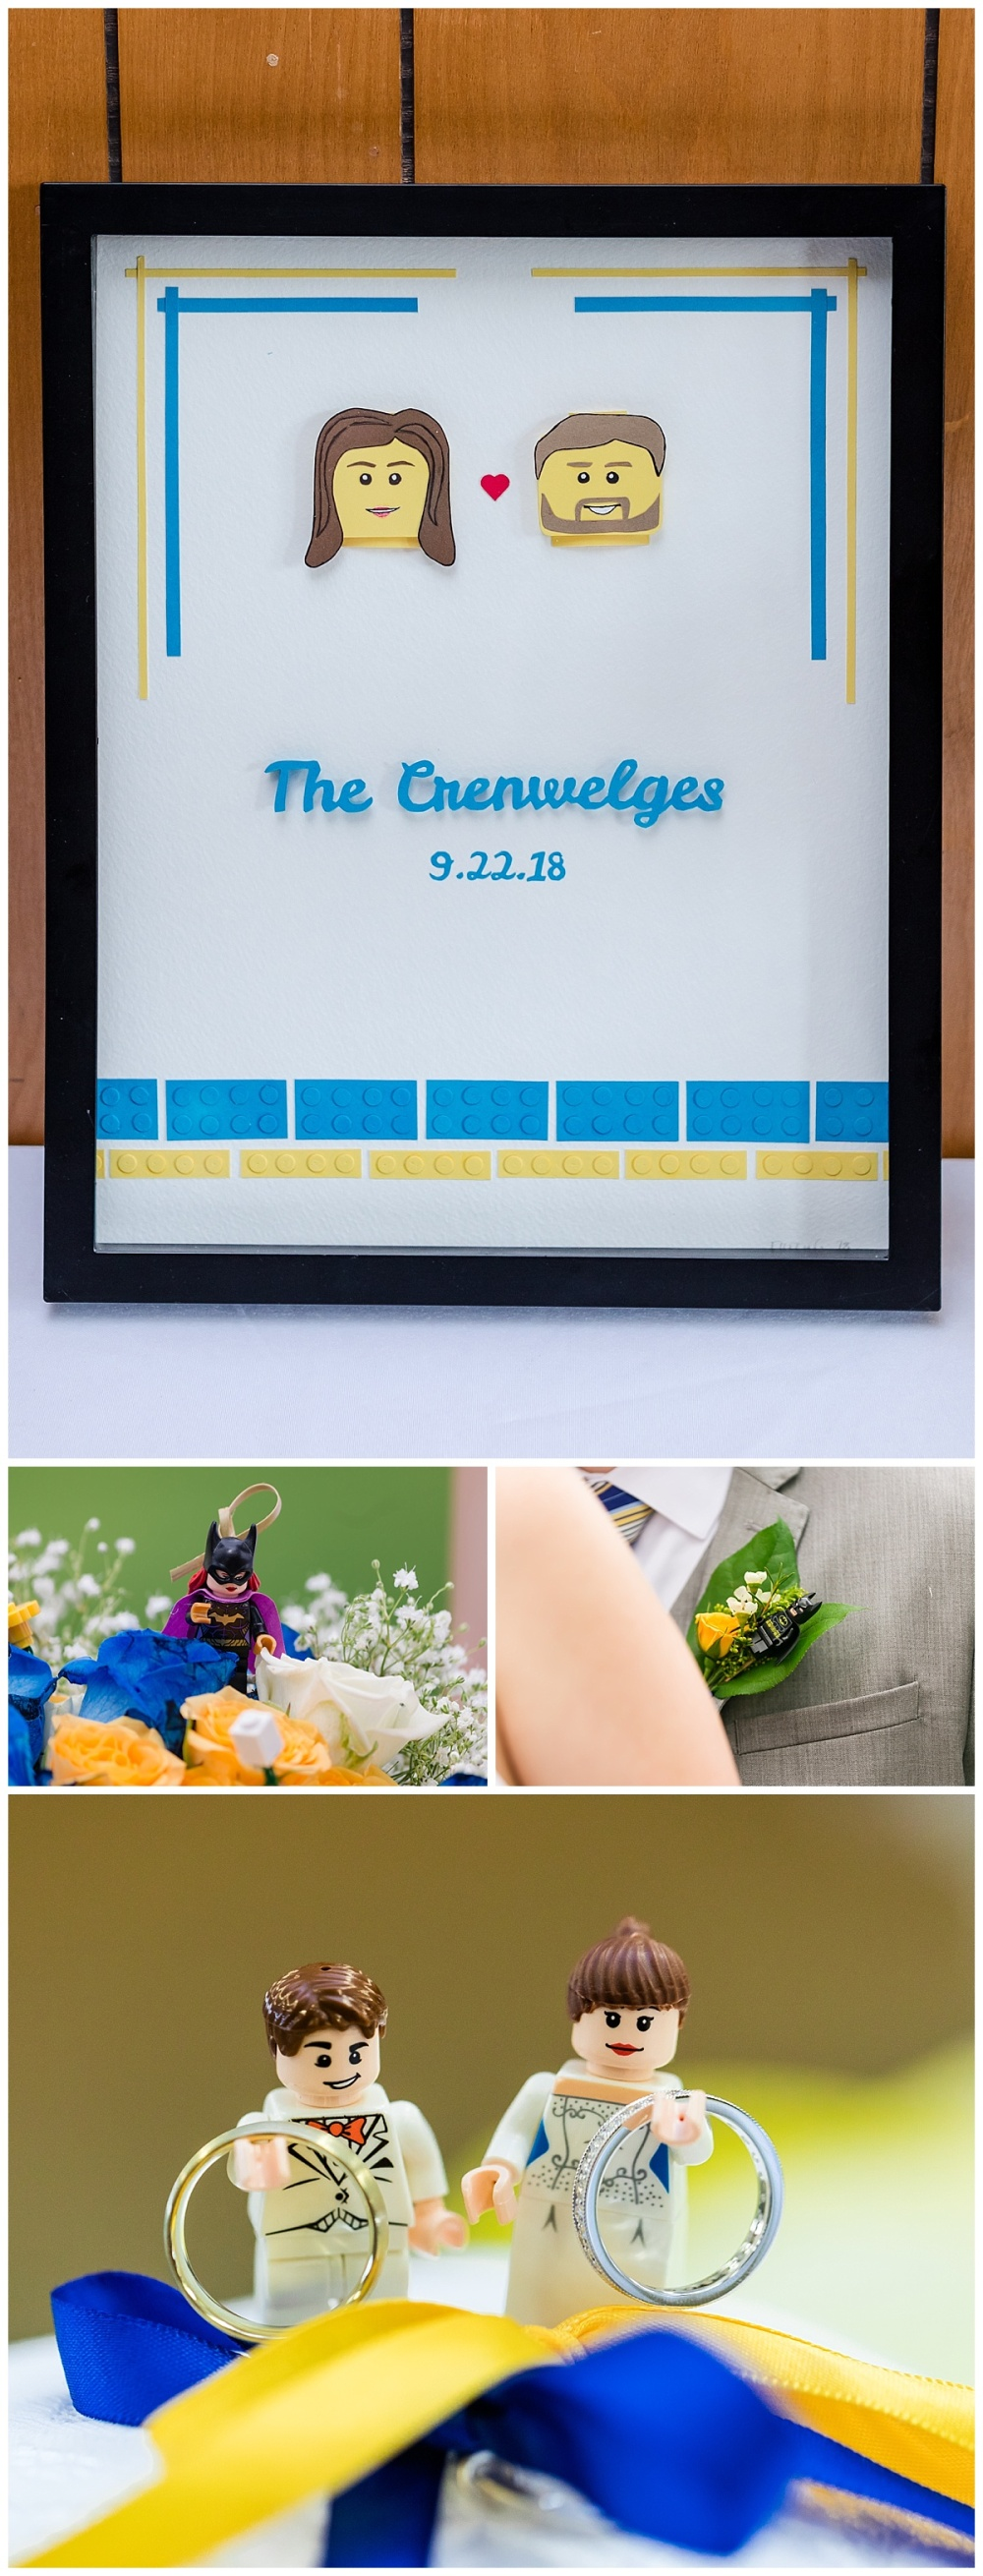 Texas-Wedding-Photographer-La-Coste-Our-Lady-Of-Grace-Church-Bride-Groom-Lego-Theme-Carly-Barton-Photography_0000.jpg